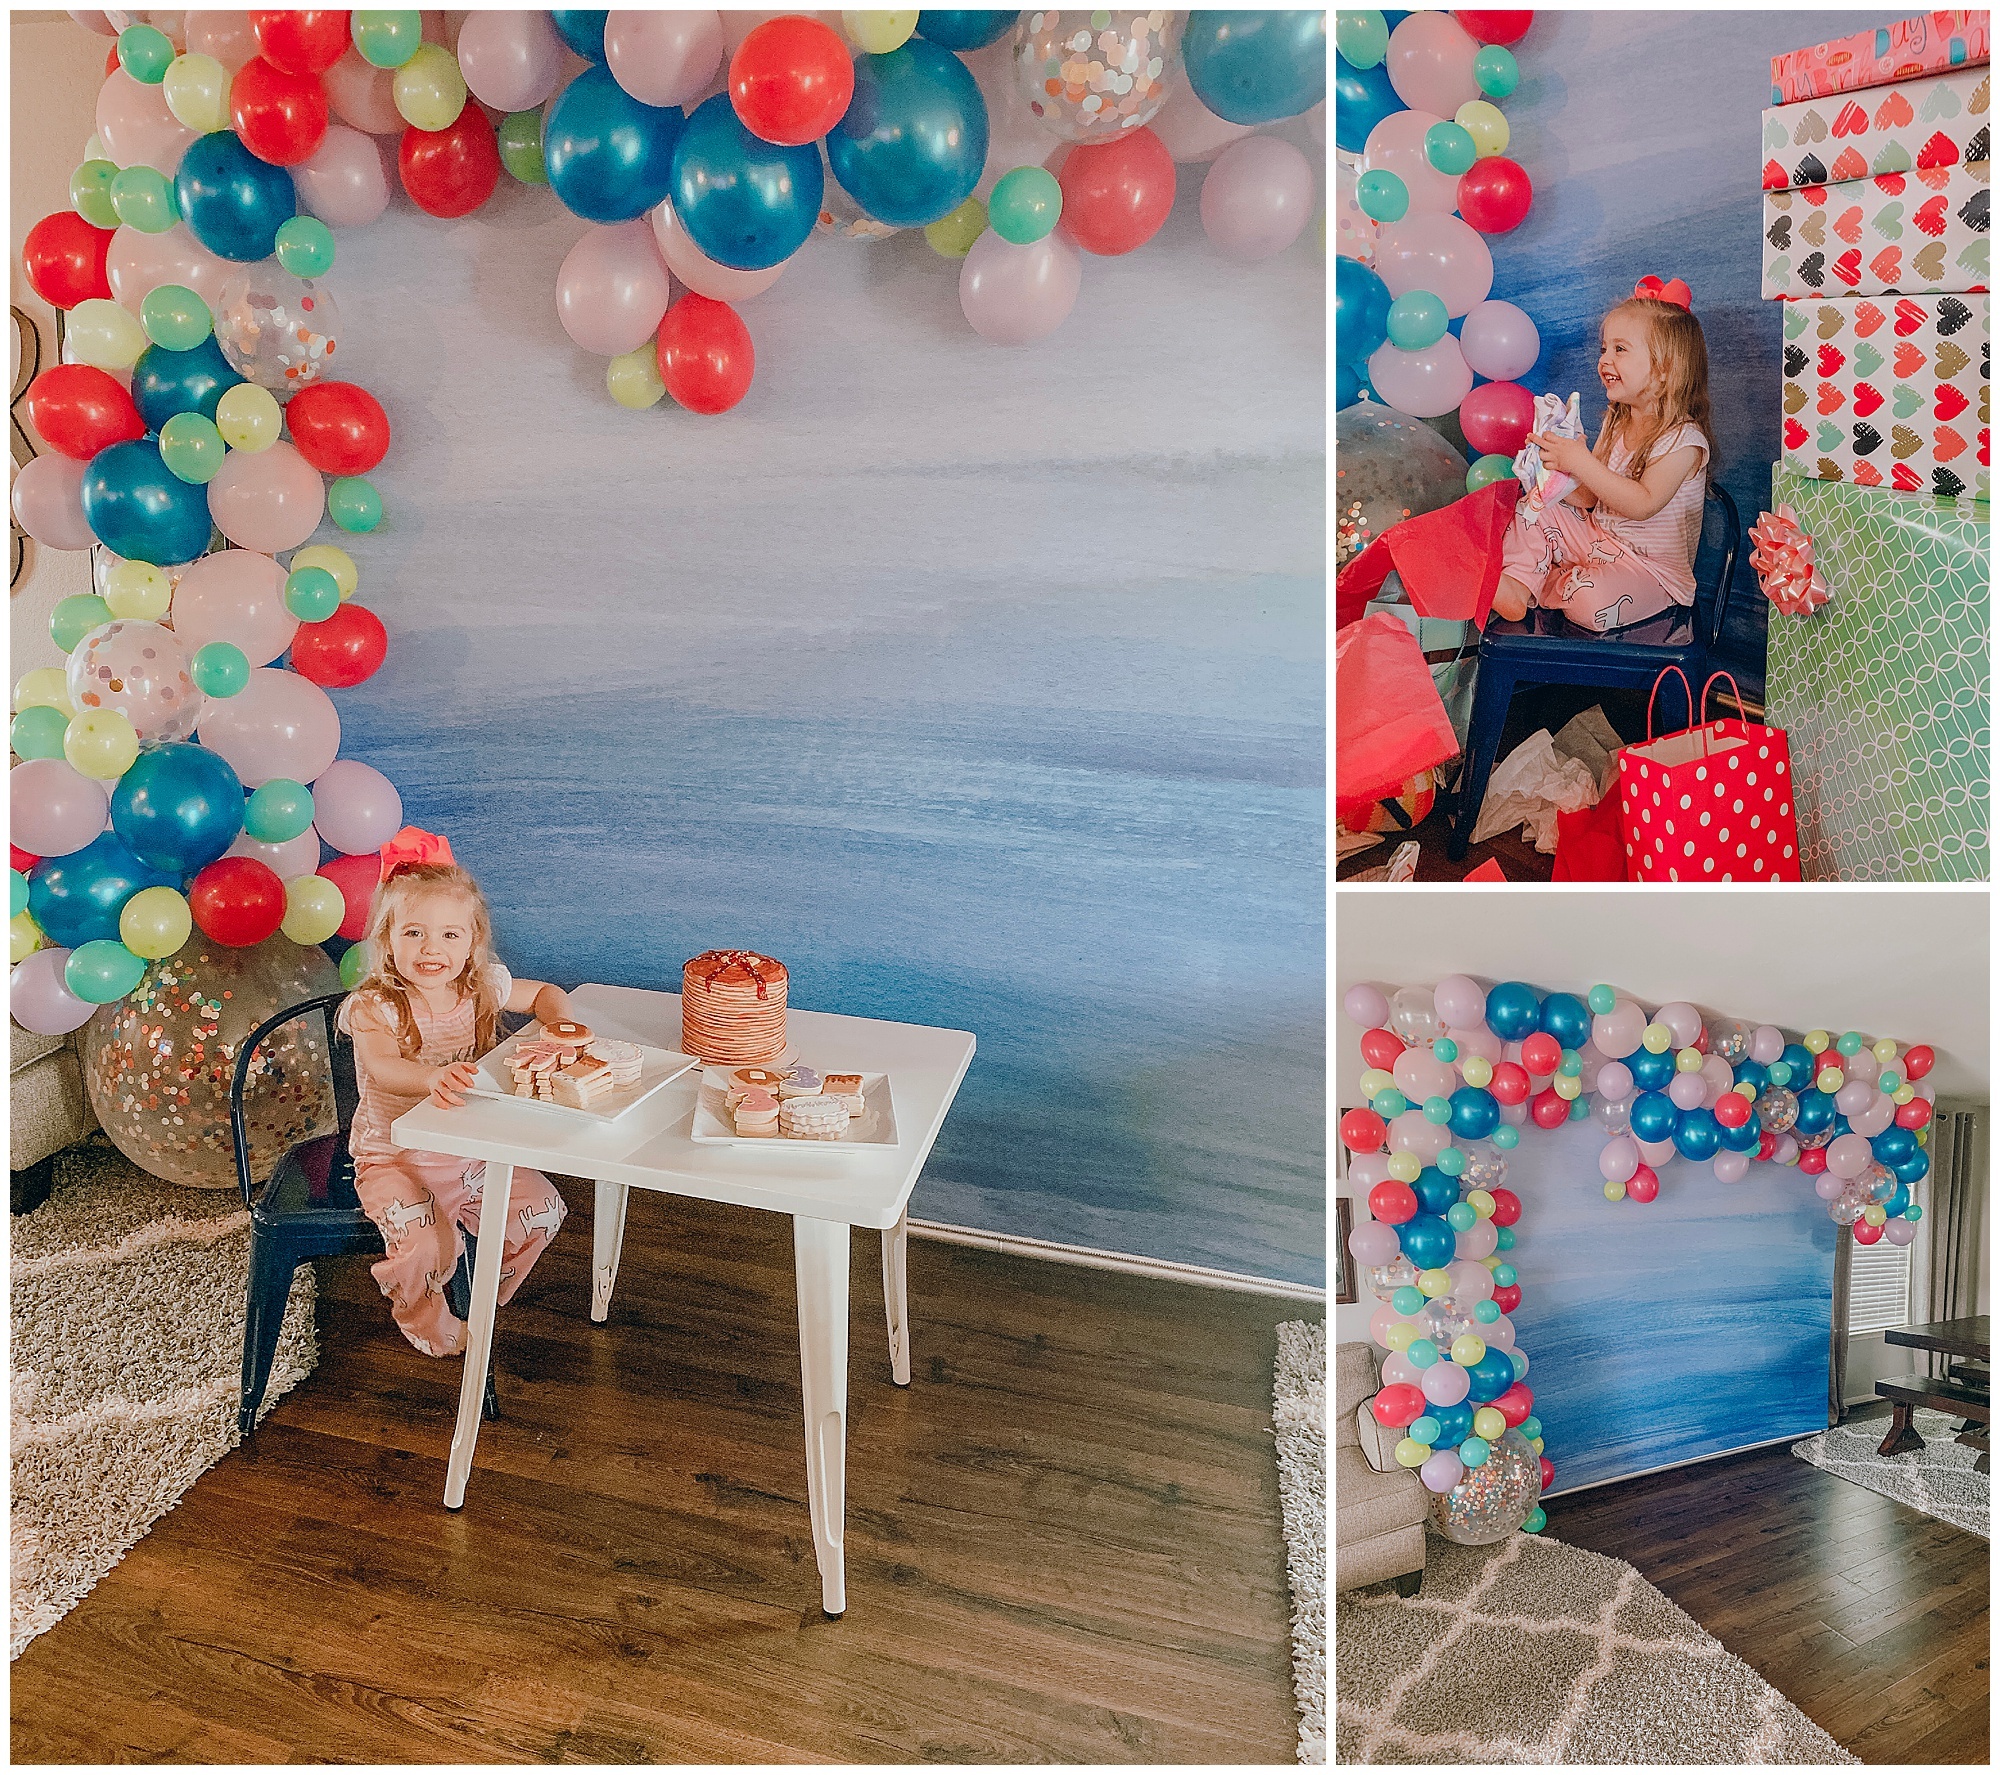 We created an installation for a birthday party!